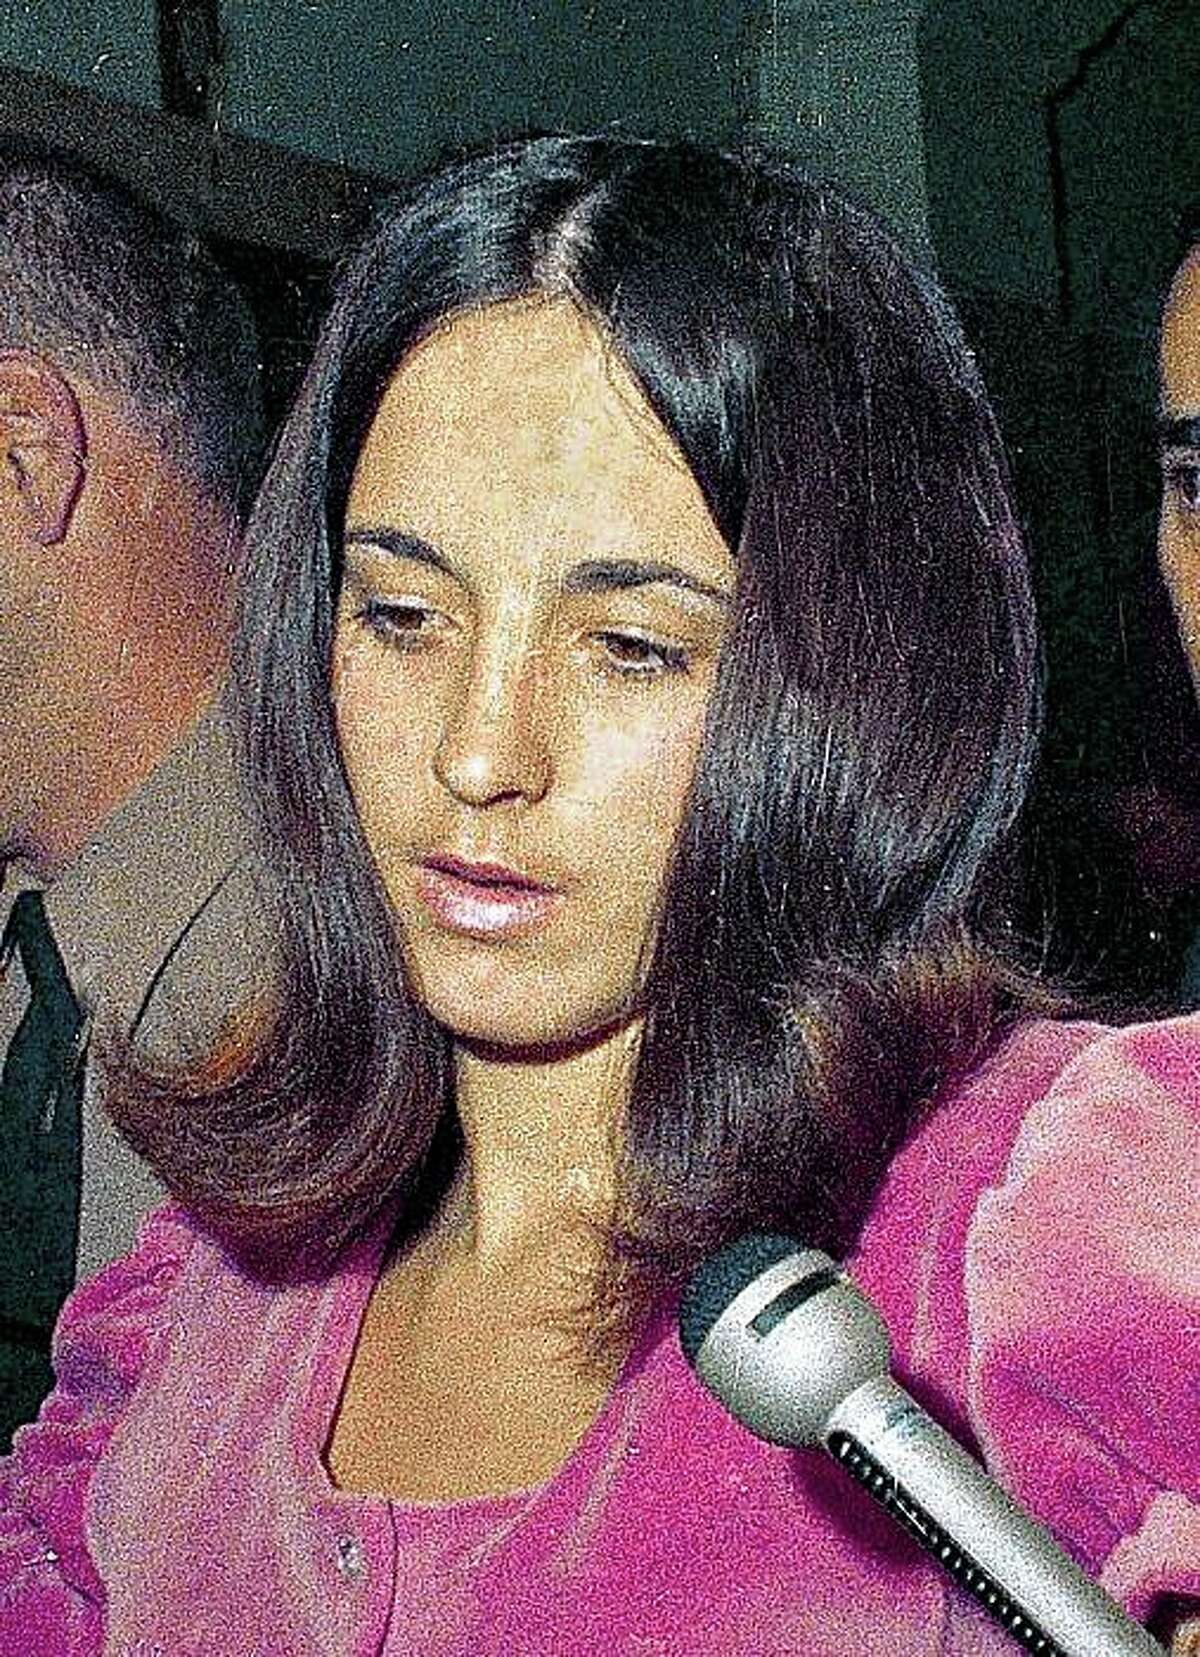 *** FILE **** Susan Atkins, a key witness in the Sharon Tate murder trial is seen, in this 1969 file photo. Atkins, the former Charles Manson follower who confessed to killing pregnant actress Sharon Tate during a murderous rampage in 1969, has a terminal illness and has asked for compassionate release from prison in her final days, authorities said Thursday June 12, 2008. (AP Photo, File)